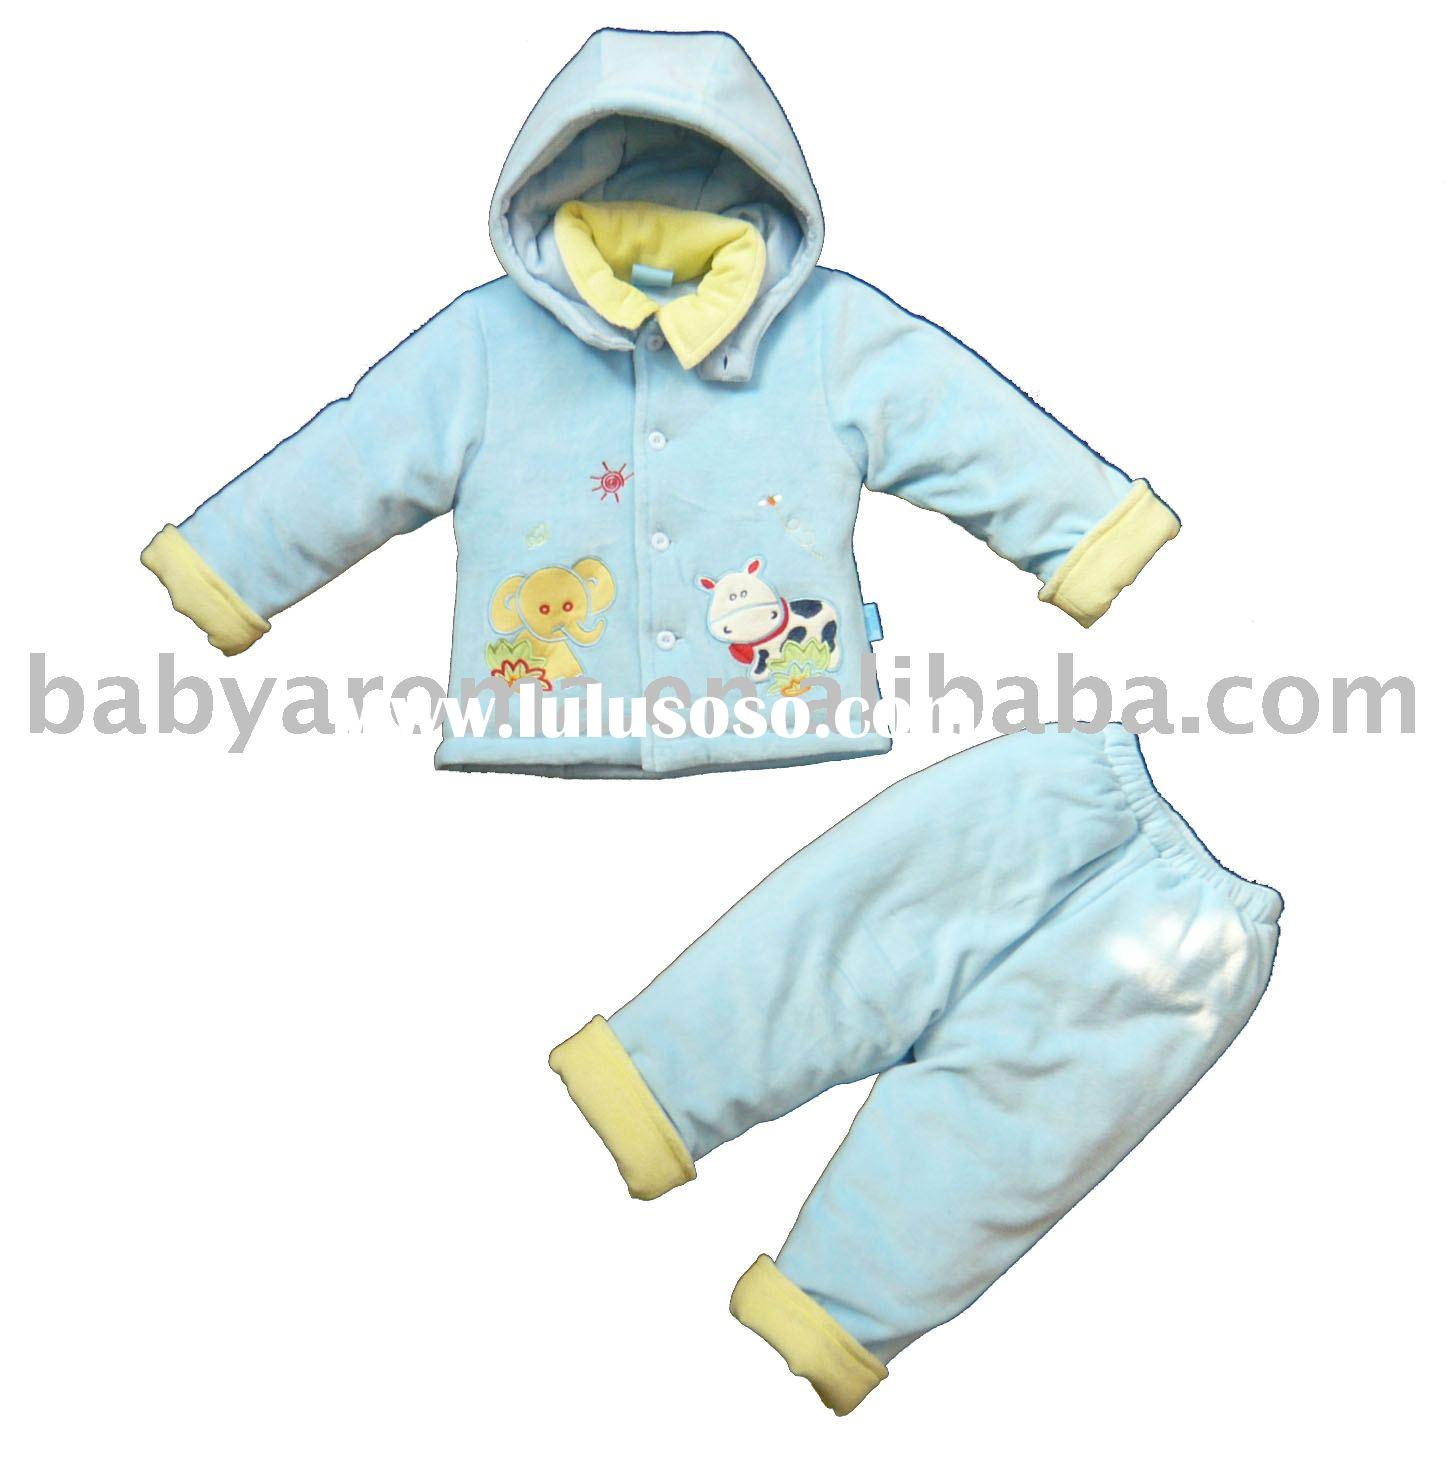 Baby clothing set(baby clothes)